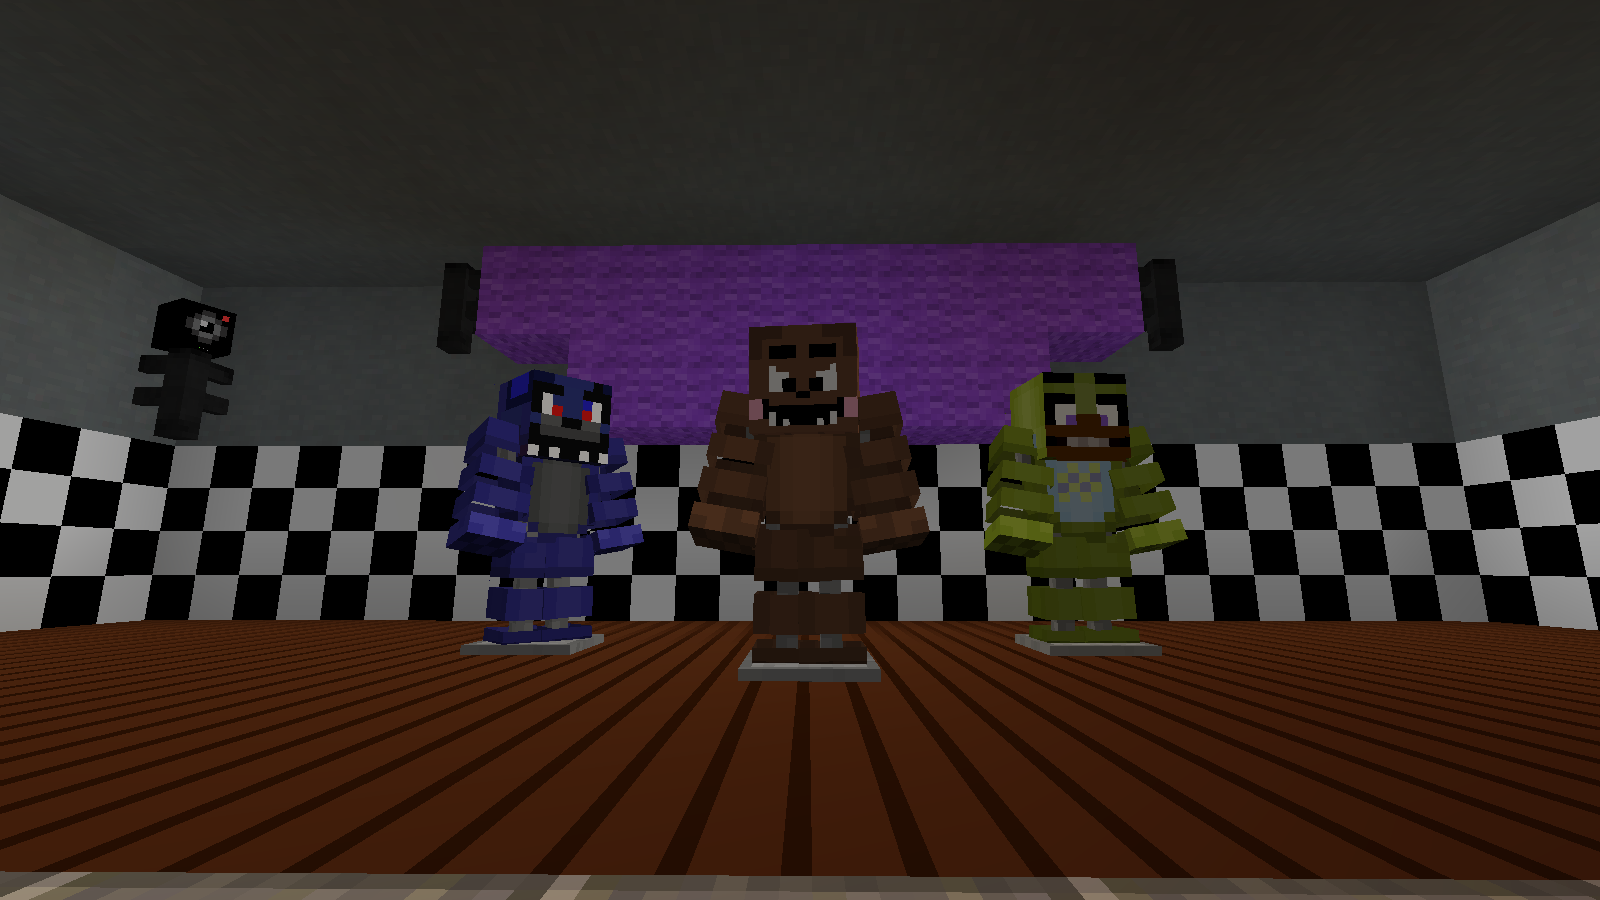 Freddy Fazbears Pizzeria Fnaf2 Maps Mapping And Modding Java